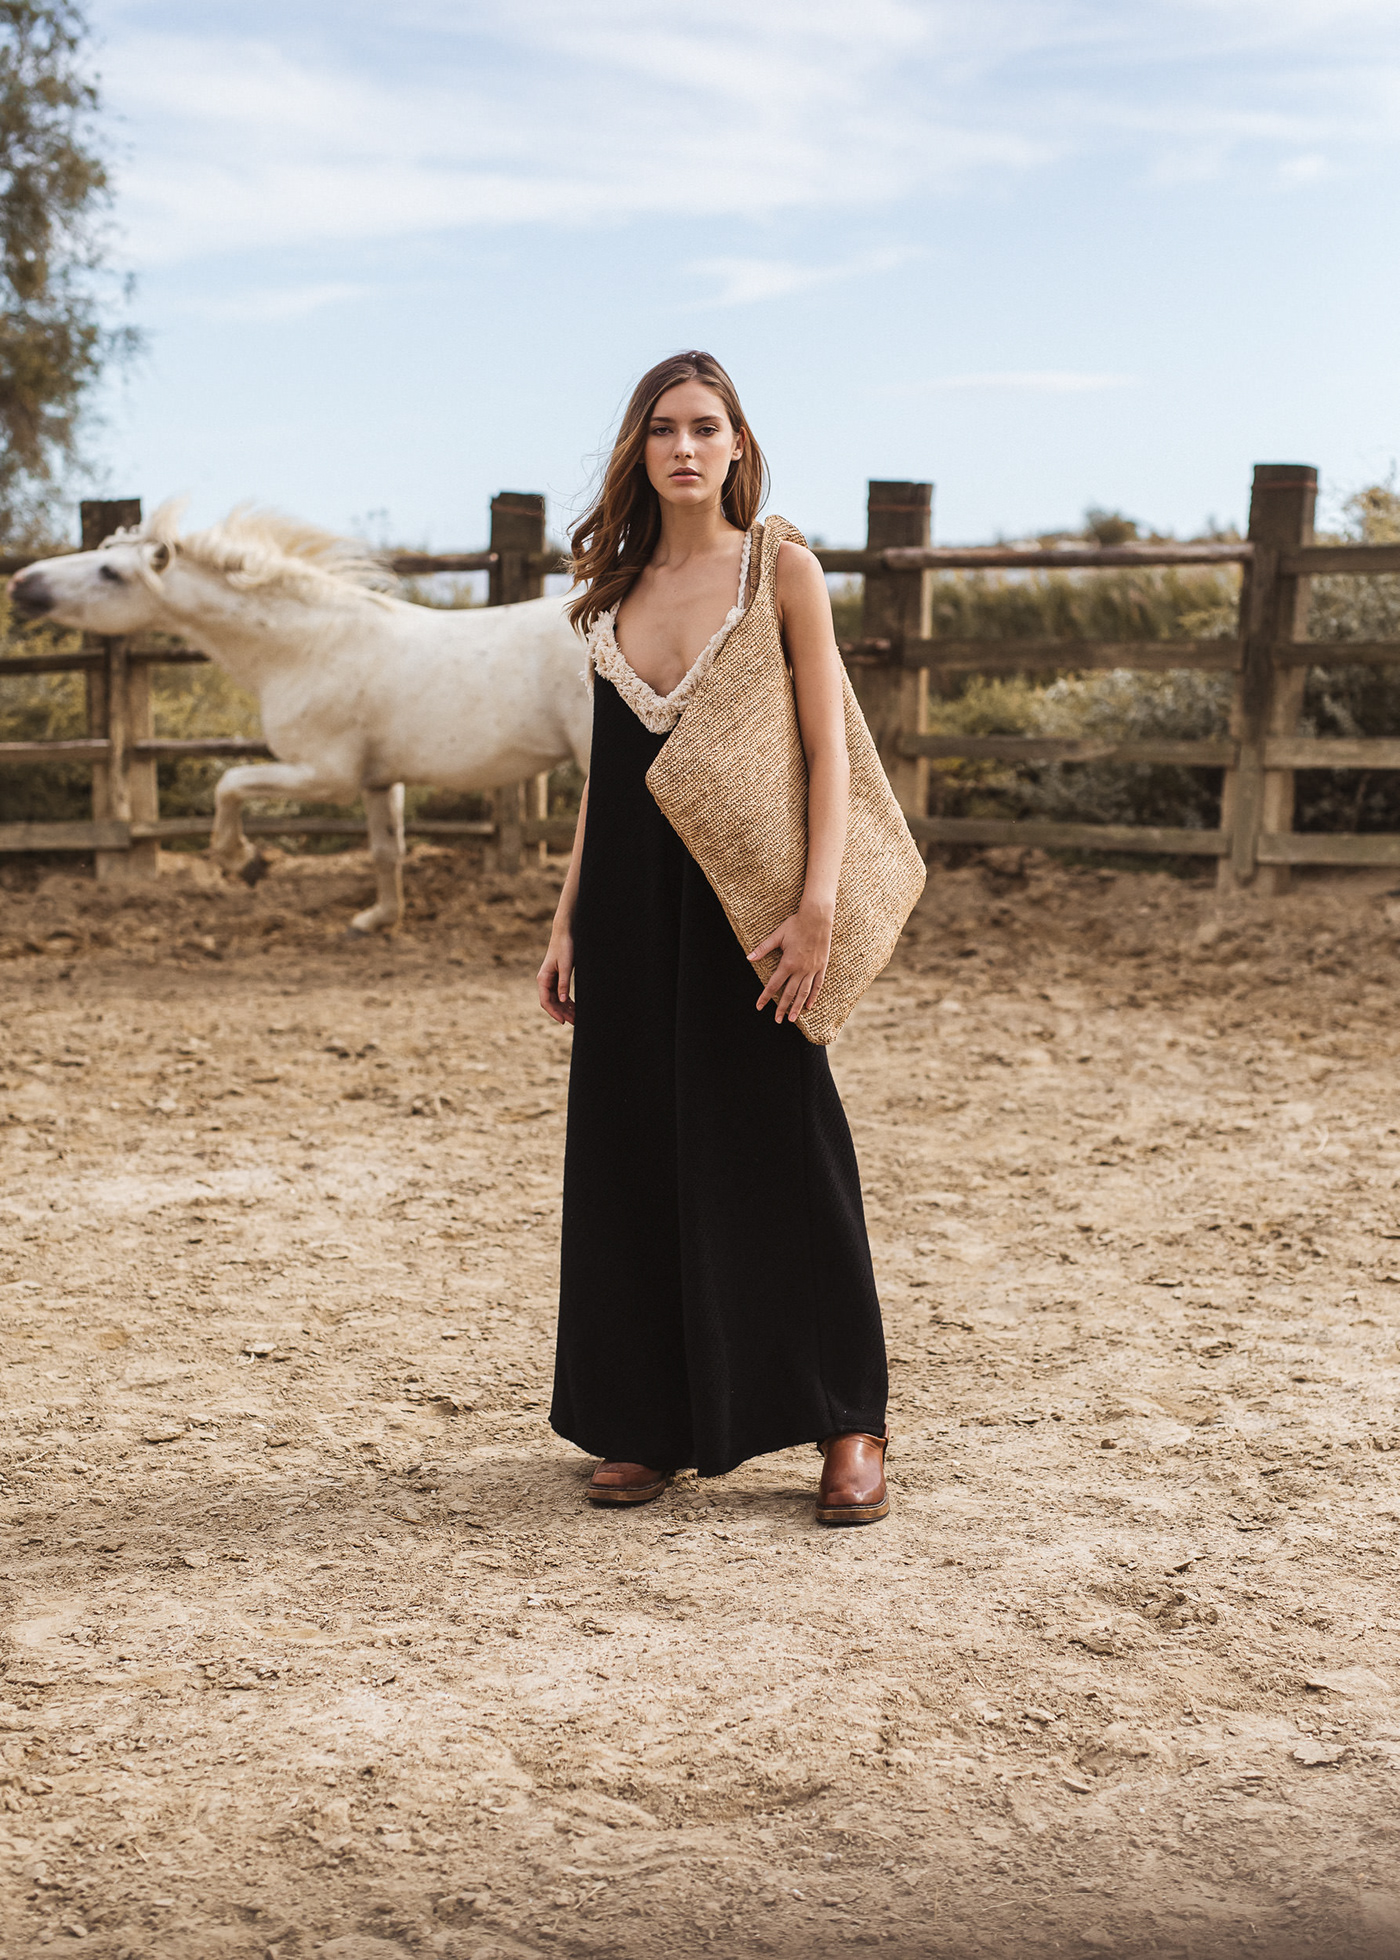 Camargue campaign cowgirl horse ranch ss2020